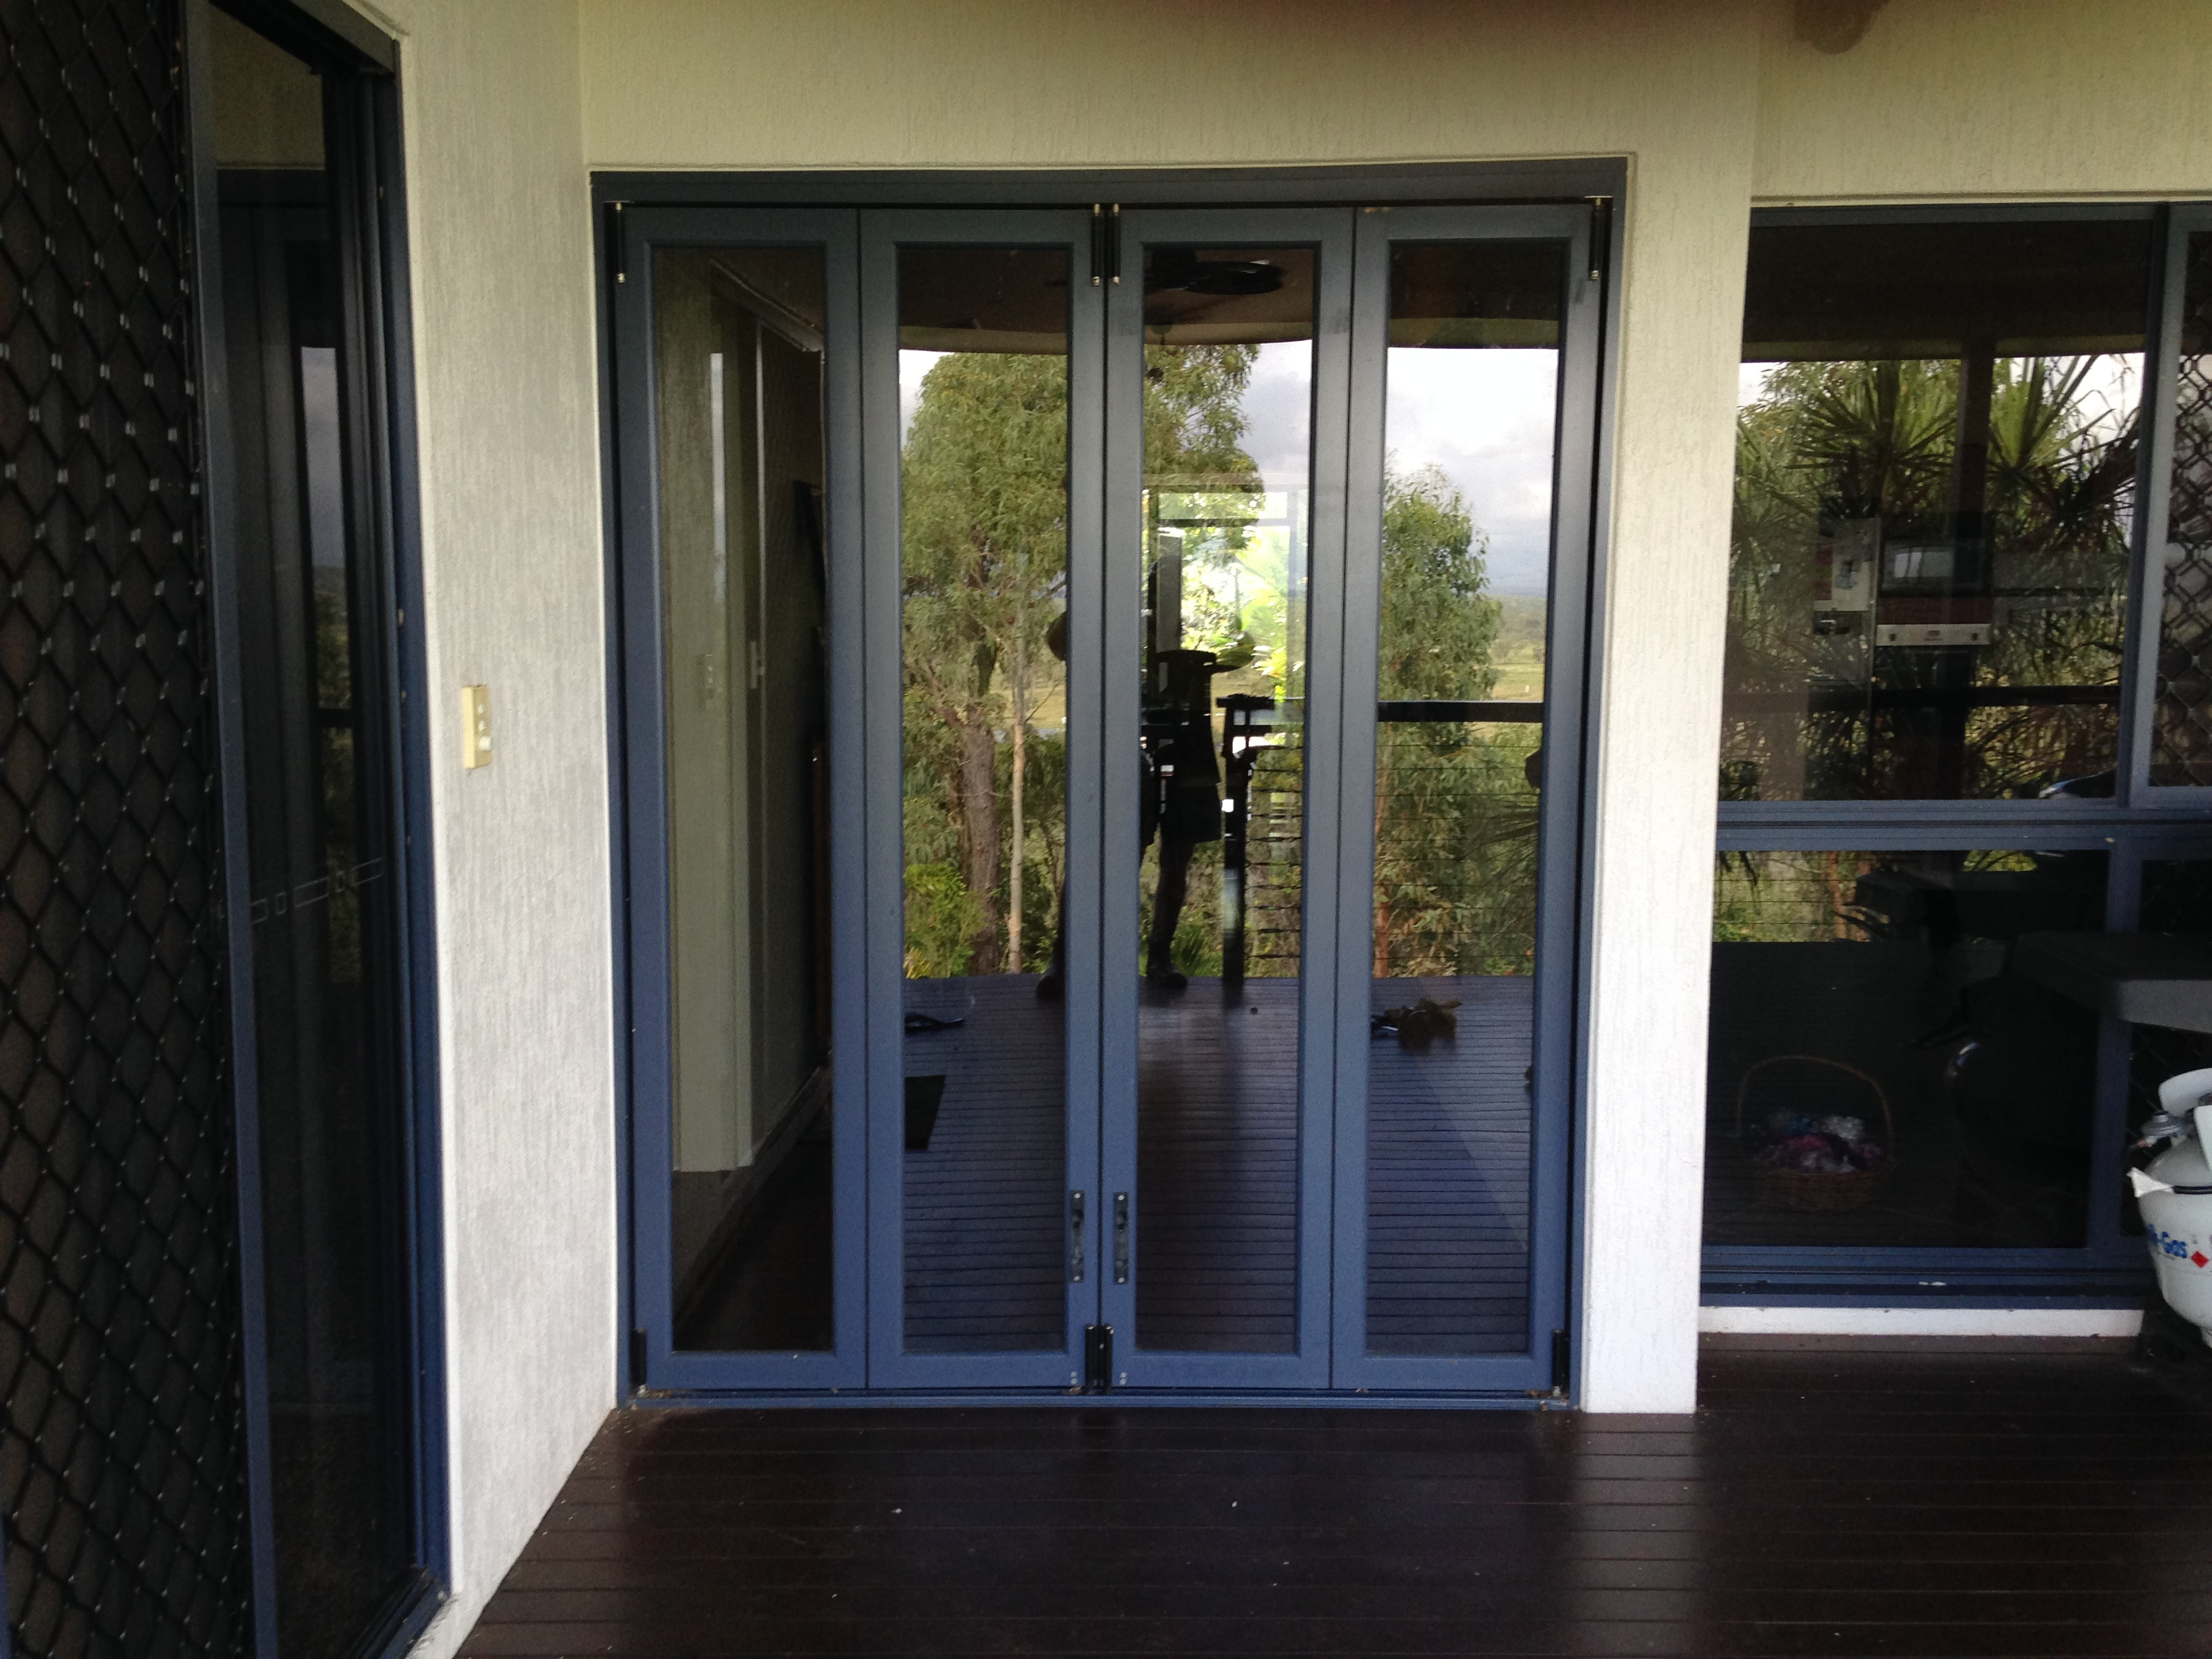 Bifold door screen 2 before - glass door closed